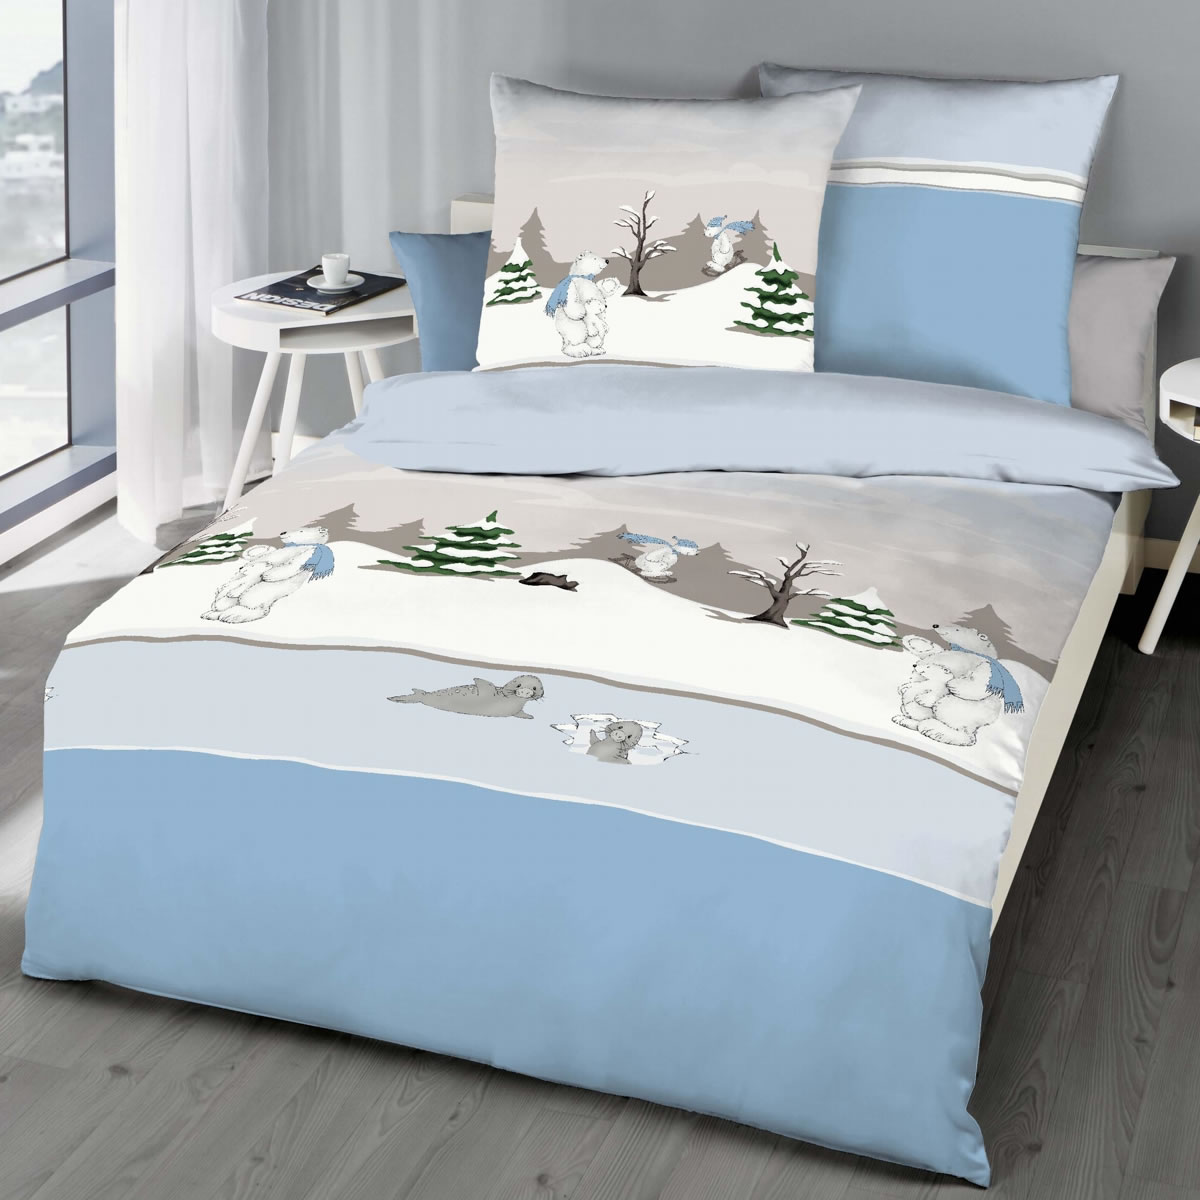 kaeppel biber bettw sche 135x200 cm design 62531 eisb r hellblau. Black Bedroom Furniture Sets. Home Design Ideas